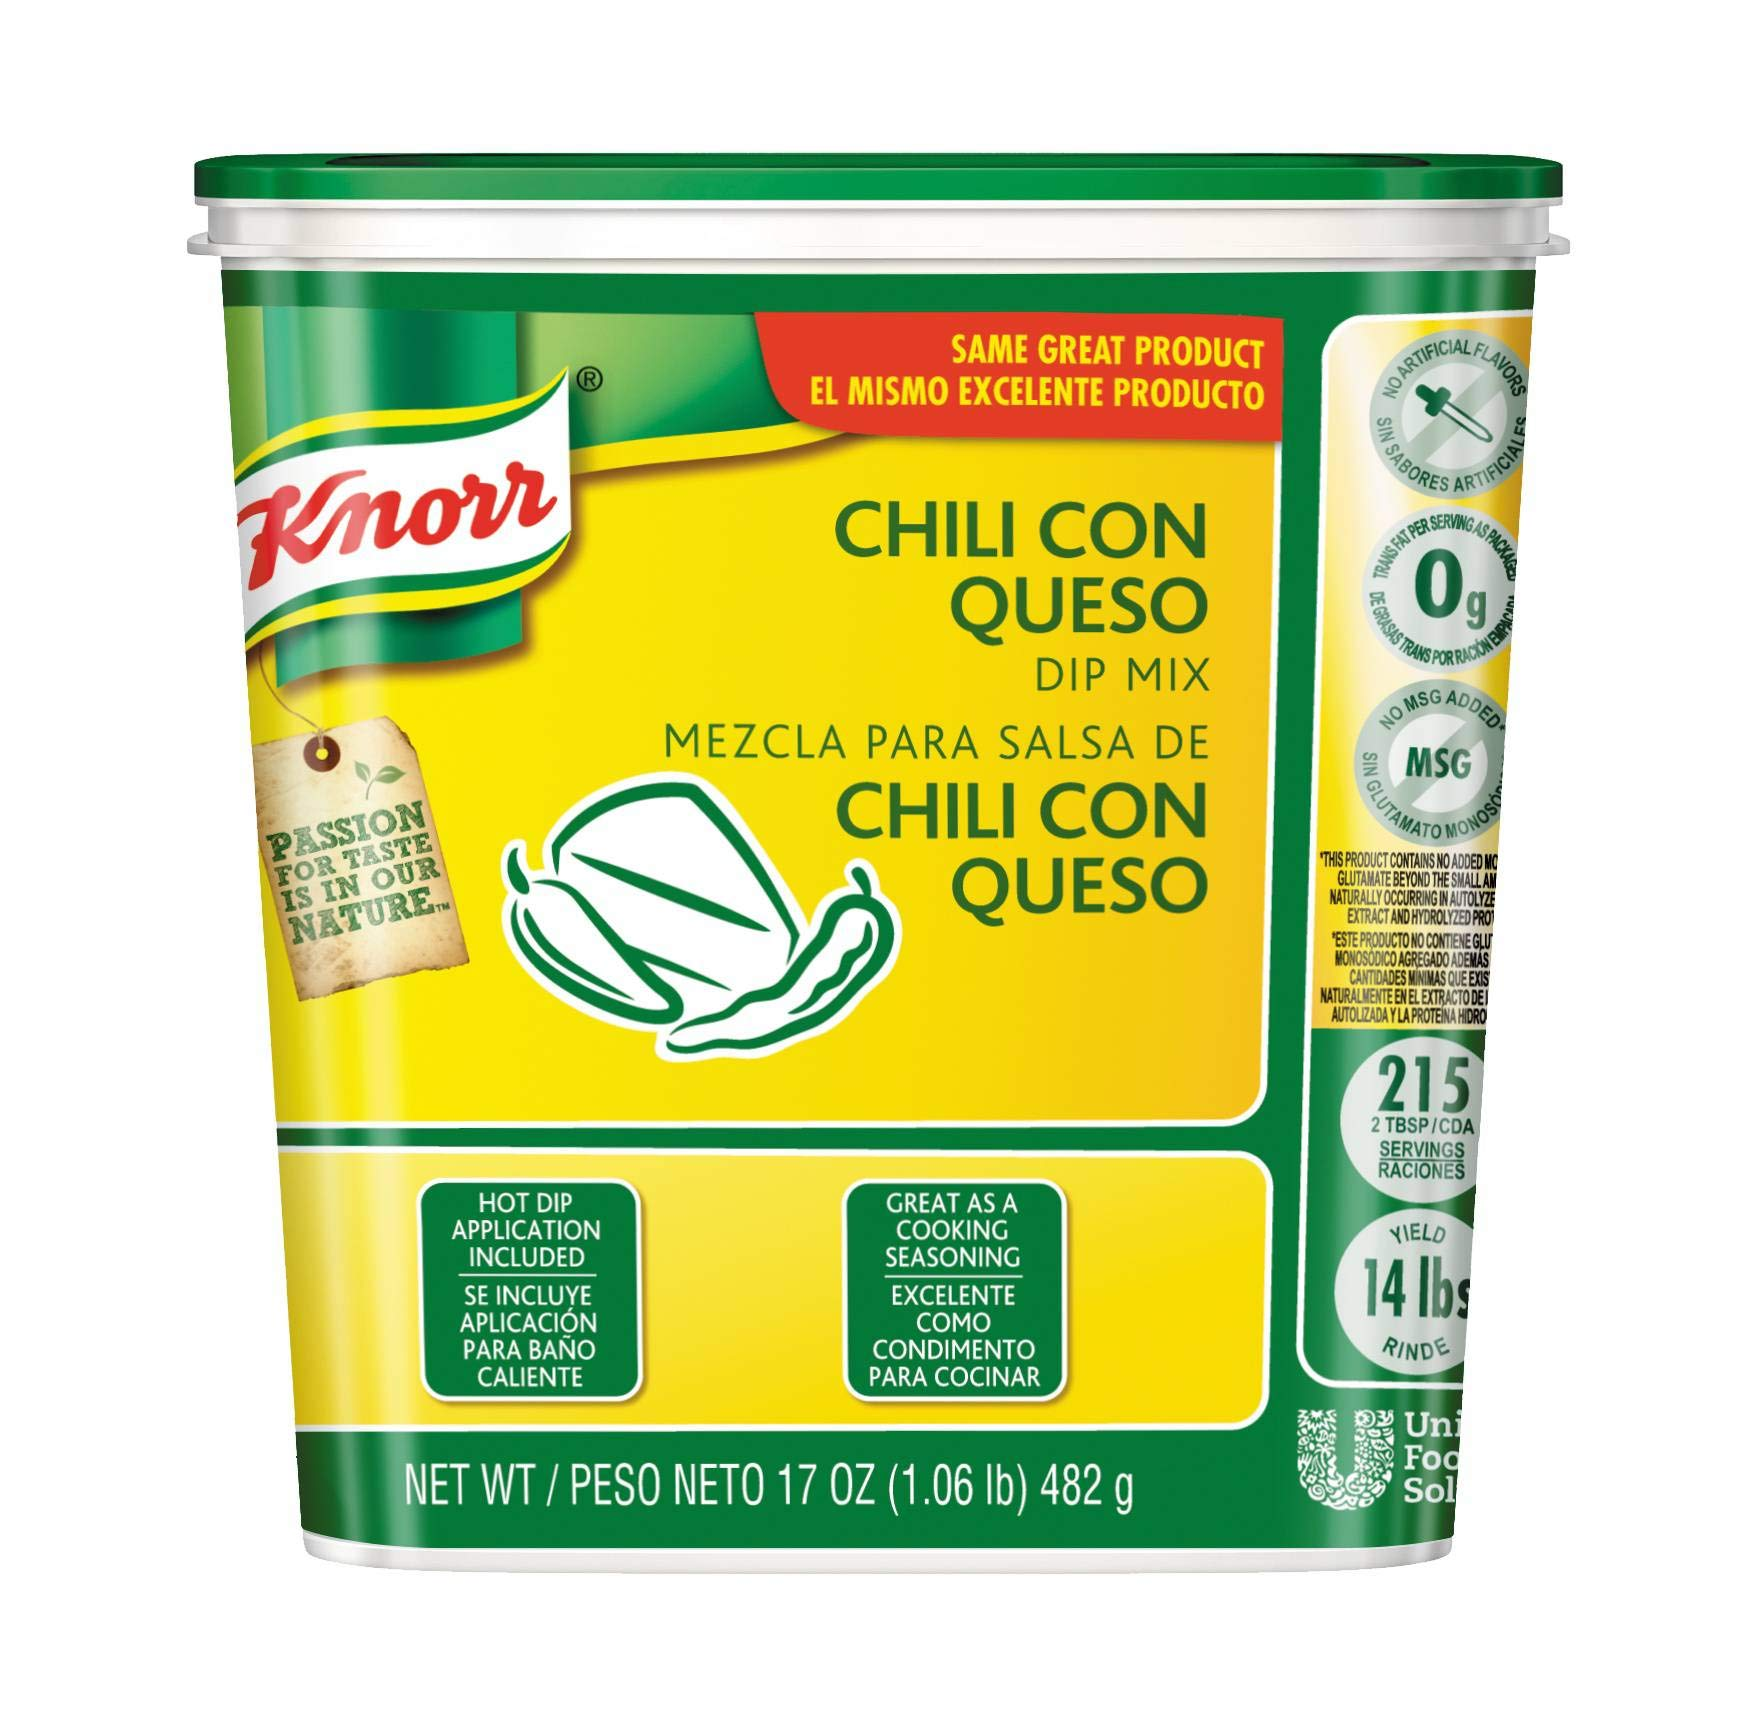 Knorr Chili Con Queso Dip Mix, 1.06 Pound - 6 per pack -- 1 each. by Knorr